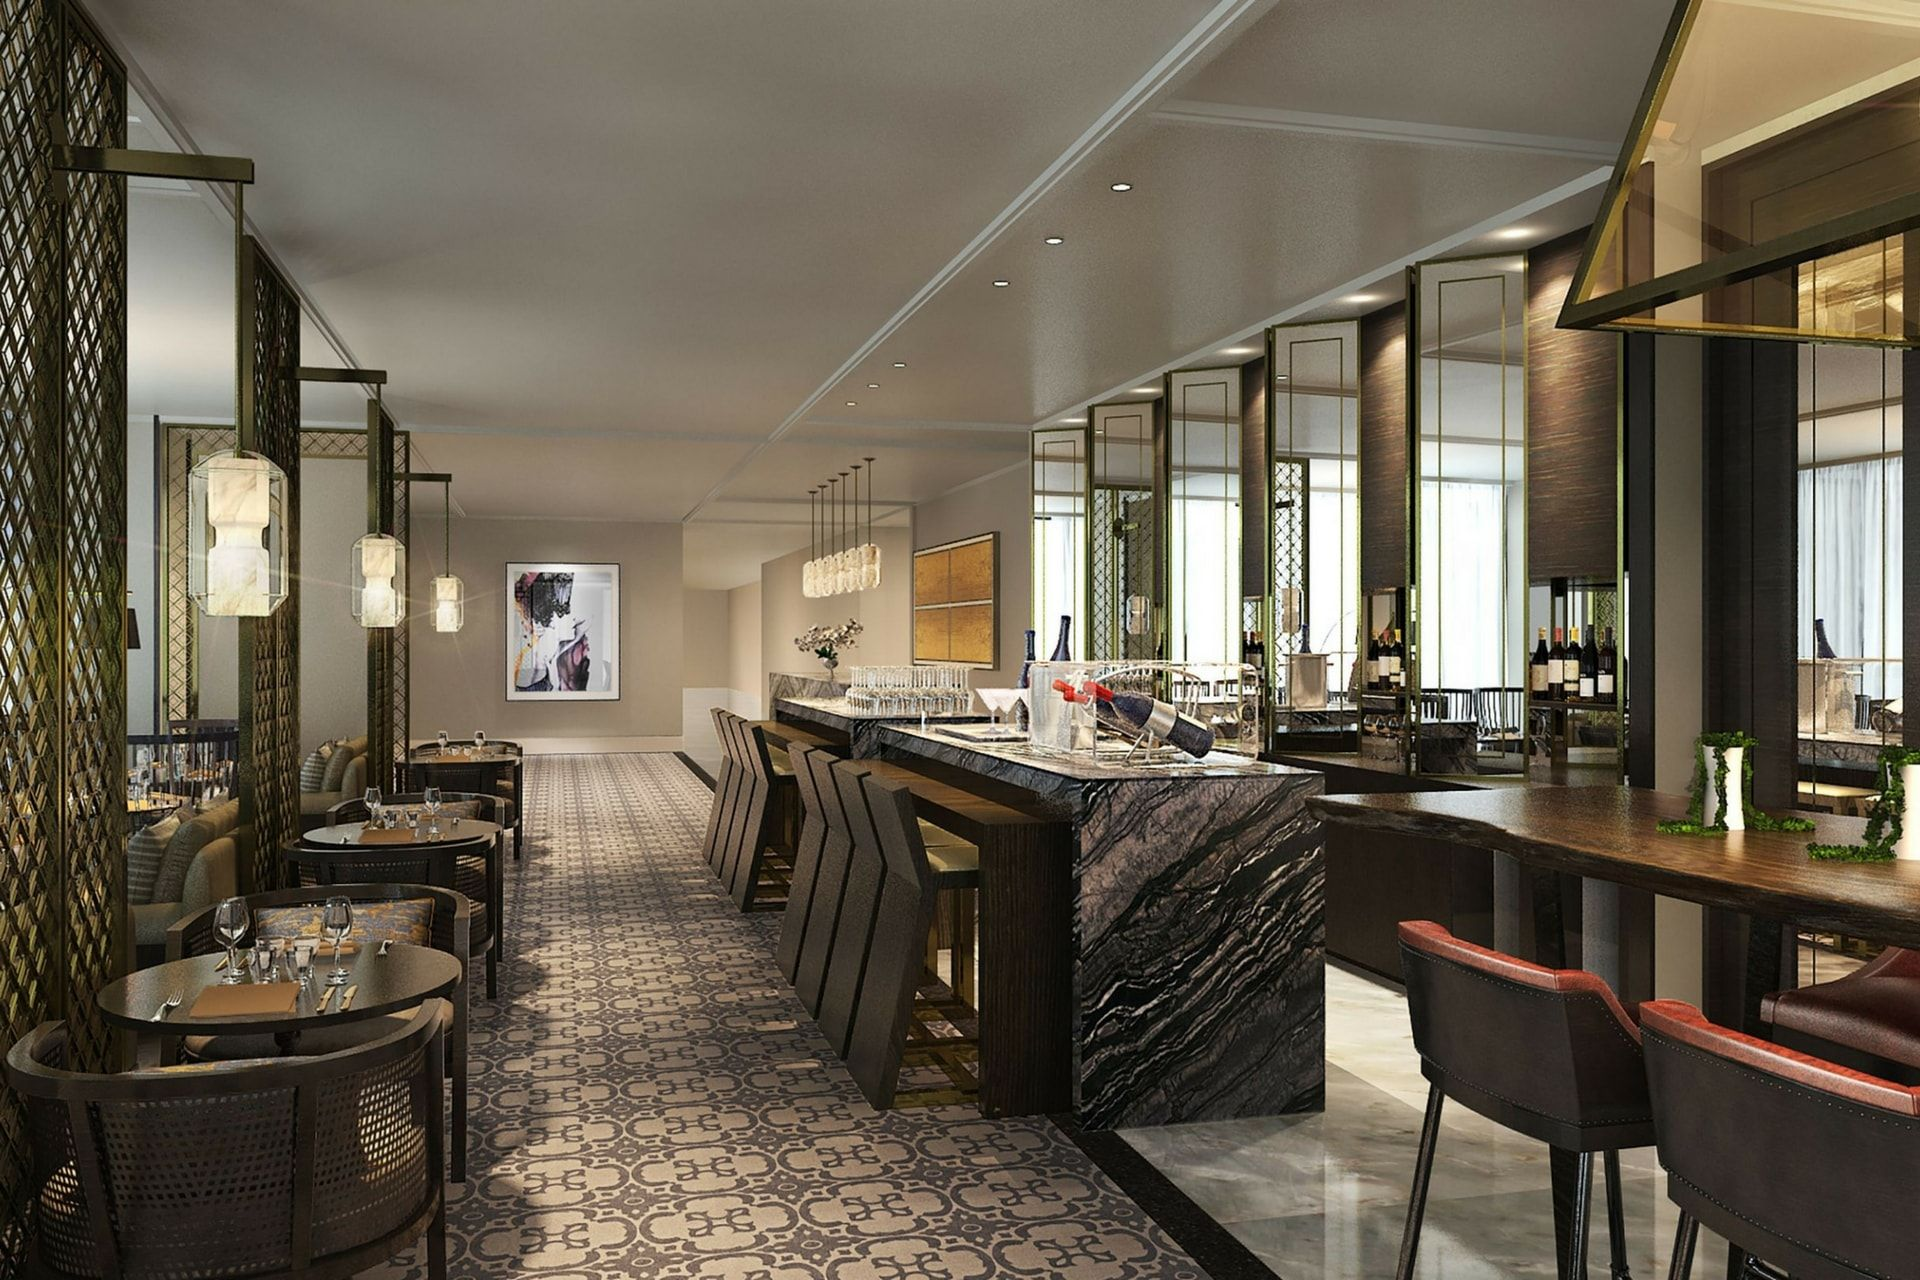 Hotel Dining Asia Restaurants Amp Bars At Park Hotel Group